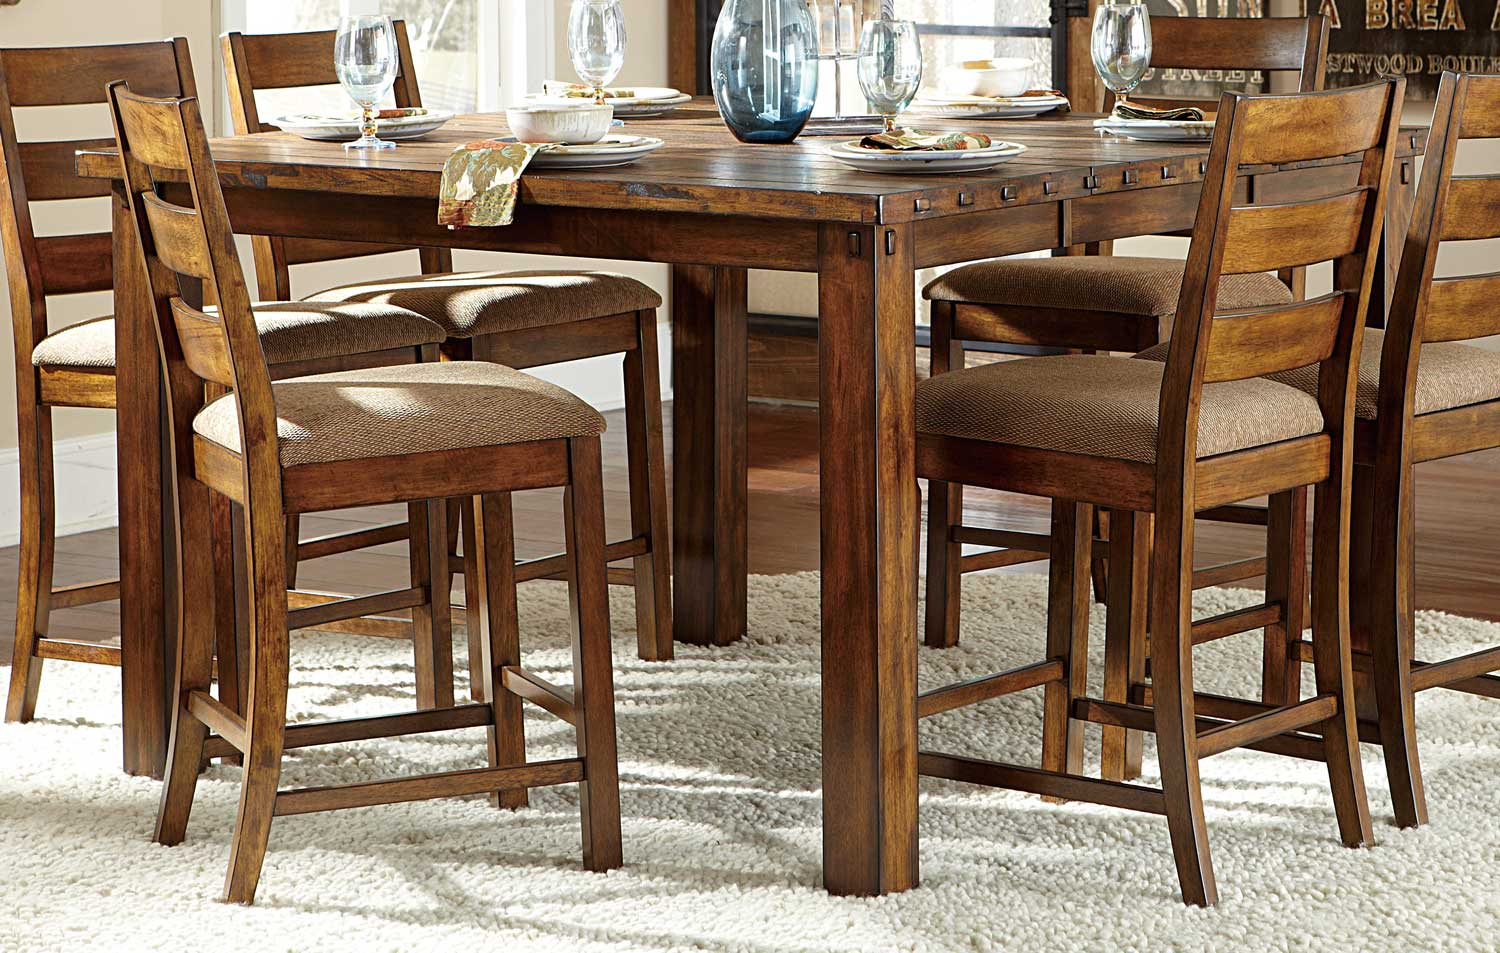 Table Height 36: Homelegance Ronan Counter Height Table